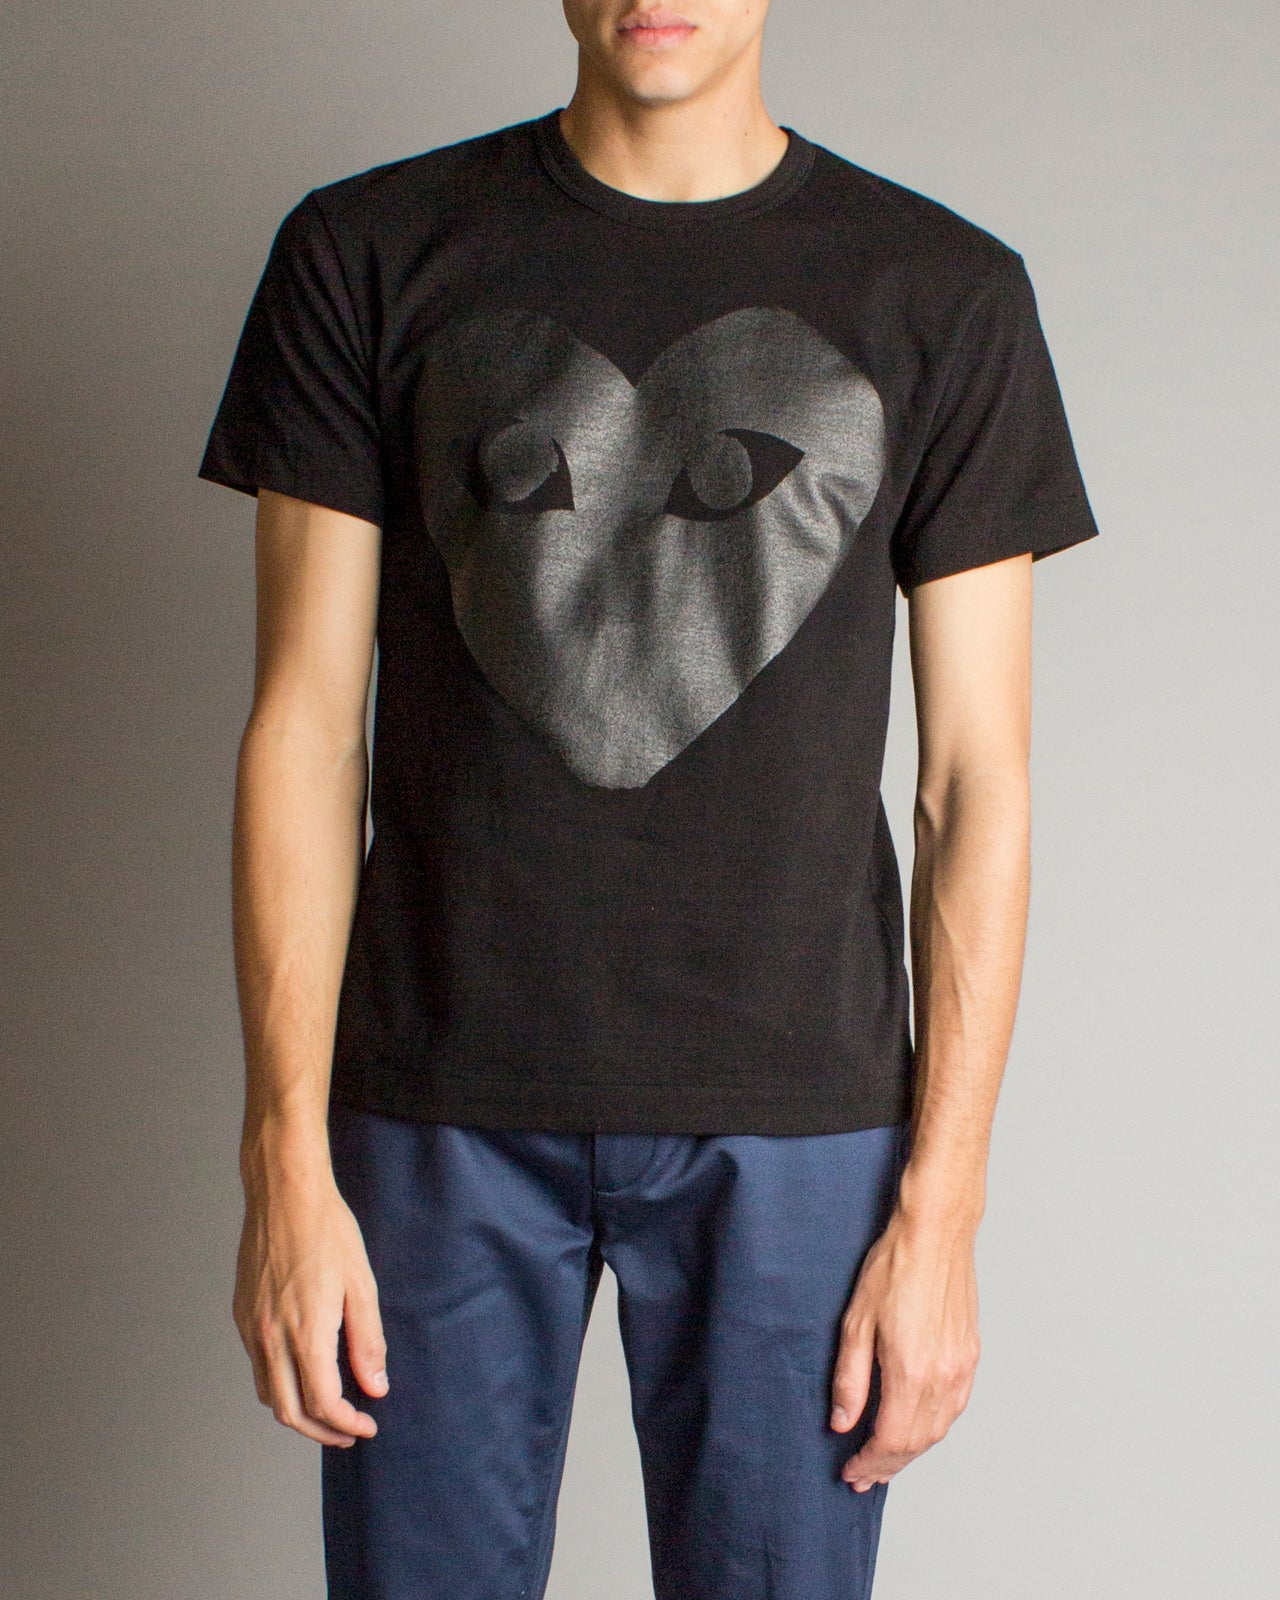 PLAY Tonal Big Heart T-Shirt Black